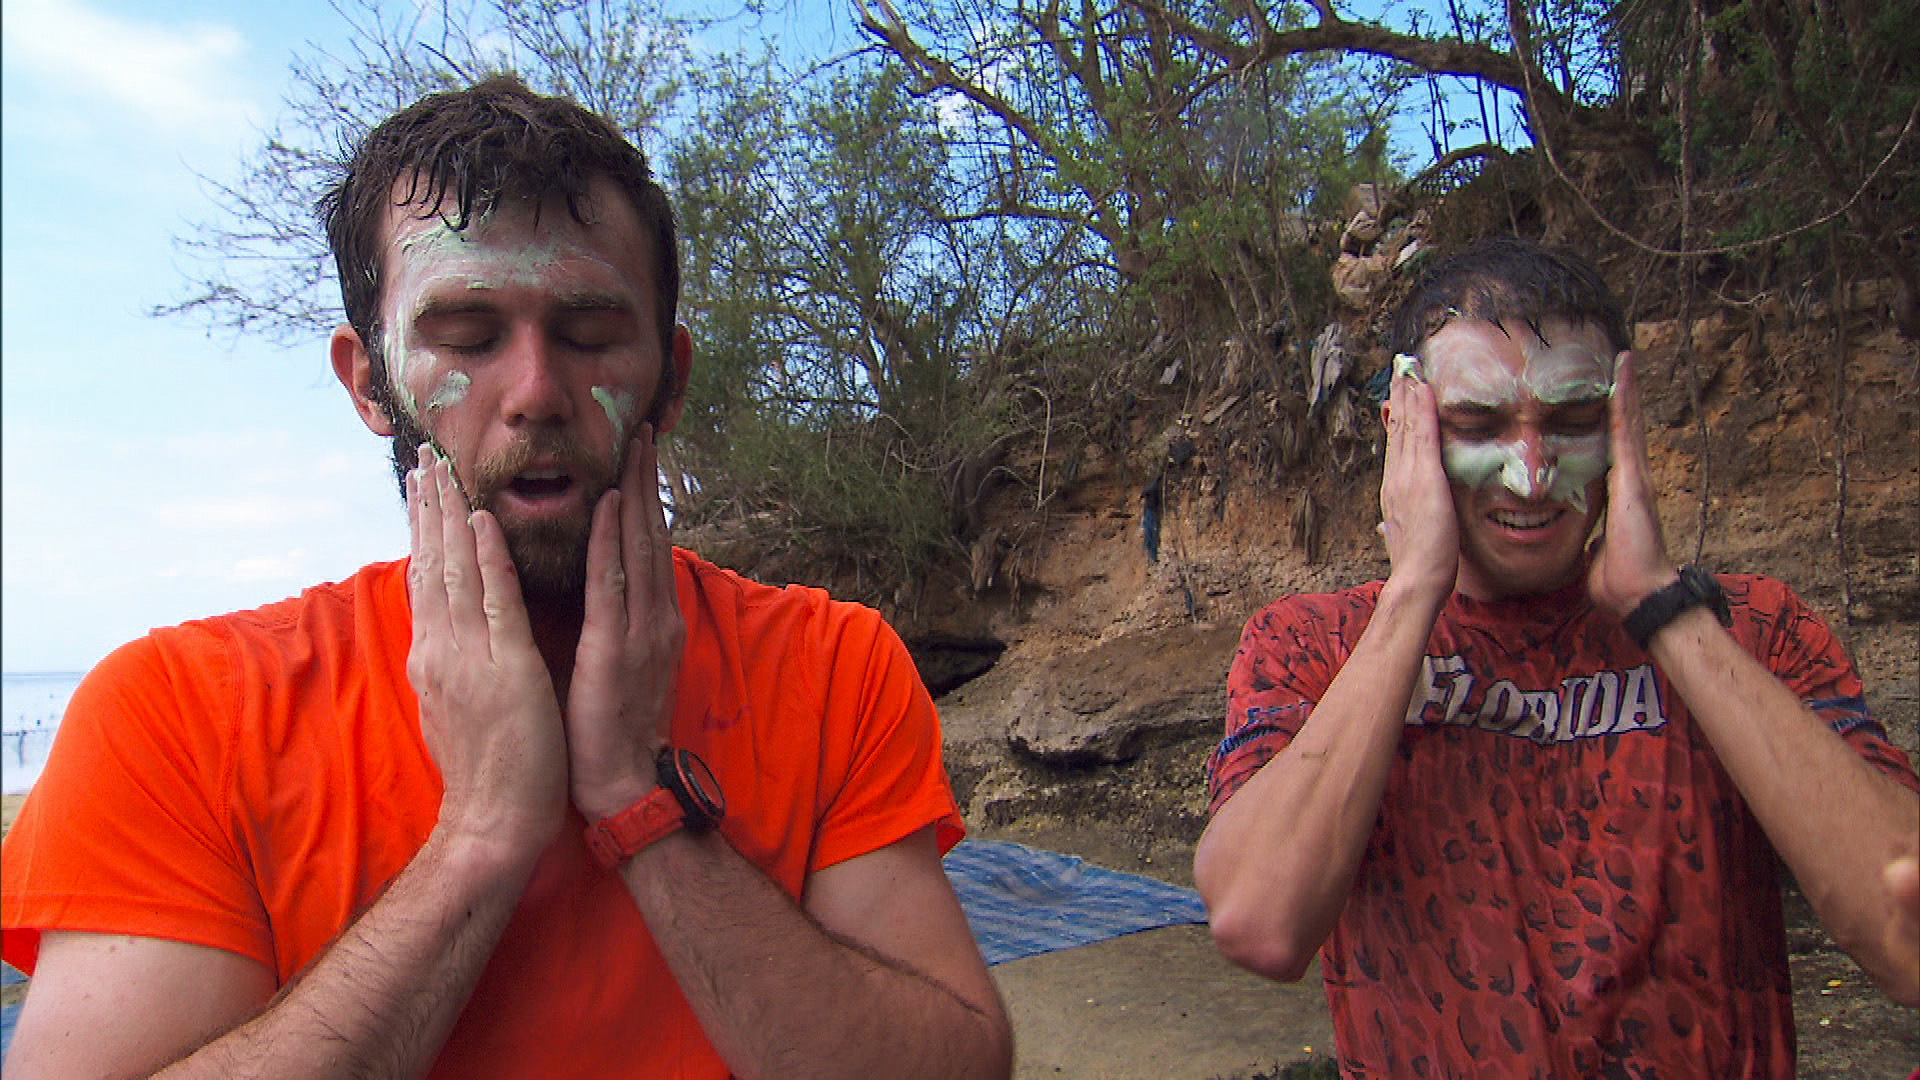 At Detour B, Brodie and Kurt sample the farmer's face cream in order to receive the next clue.